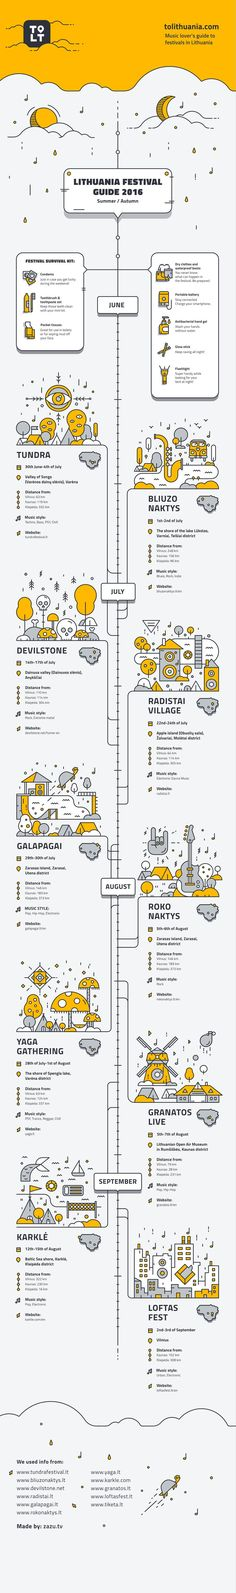 Lithuania Festival Guide on Behance. If you're a user experience professional, listen to The UX Blog Podcast on iTunes.